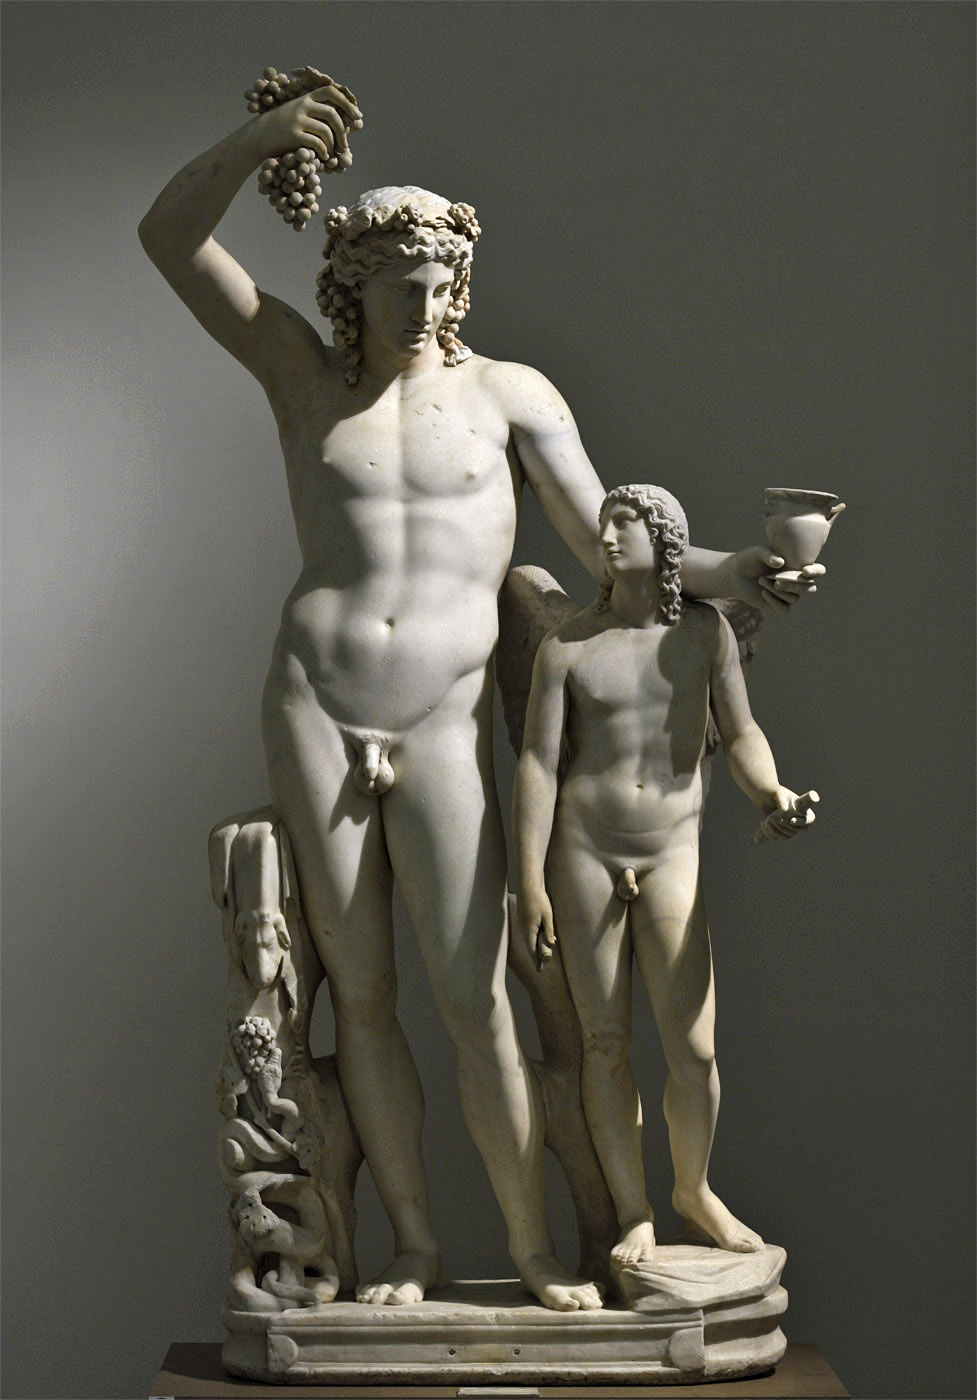 Dionysus and Eros. Marble. Roman copy of a Greek original. 2nd cent. CE. Inv. No. 6307. Naples, National Archaeological Museum